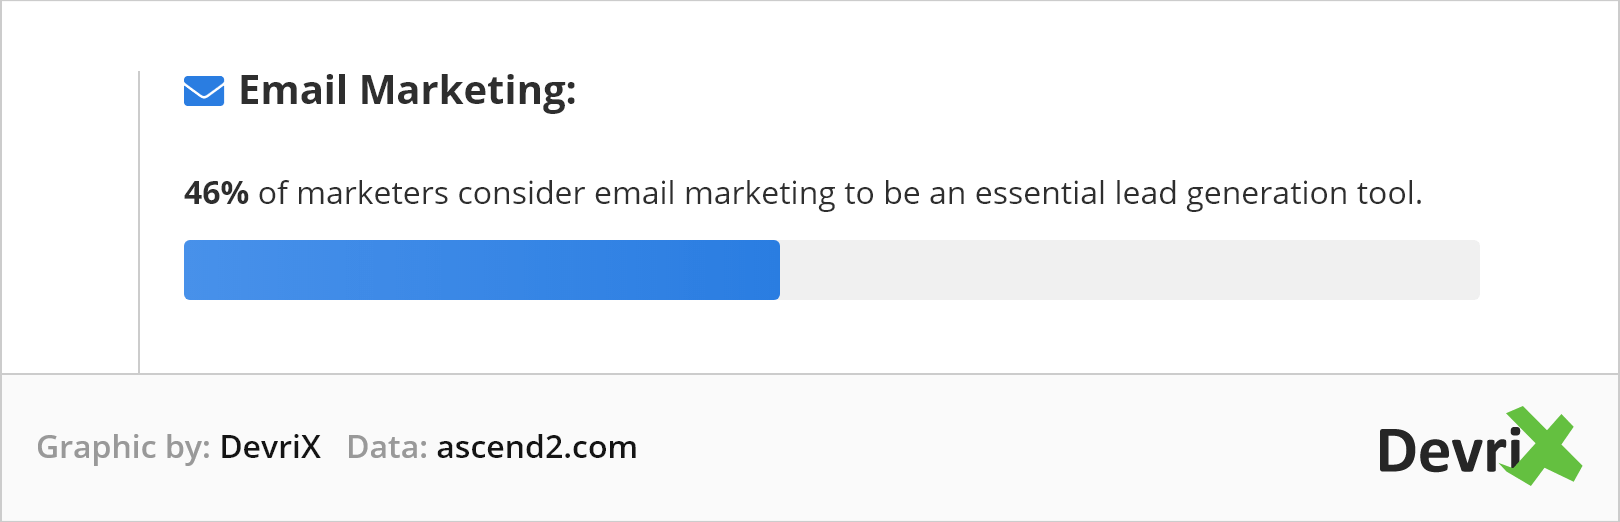 46% of marketers consider email marketing to be an essential lead generation tool